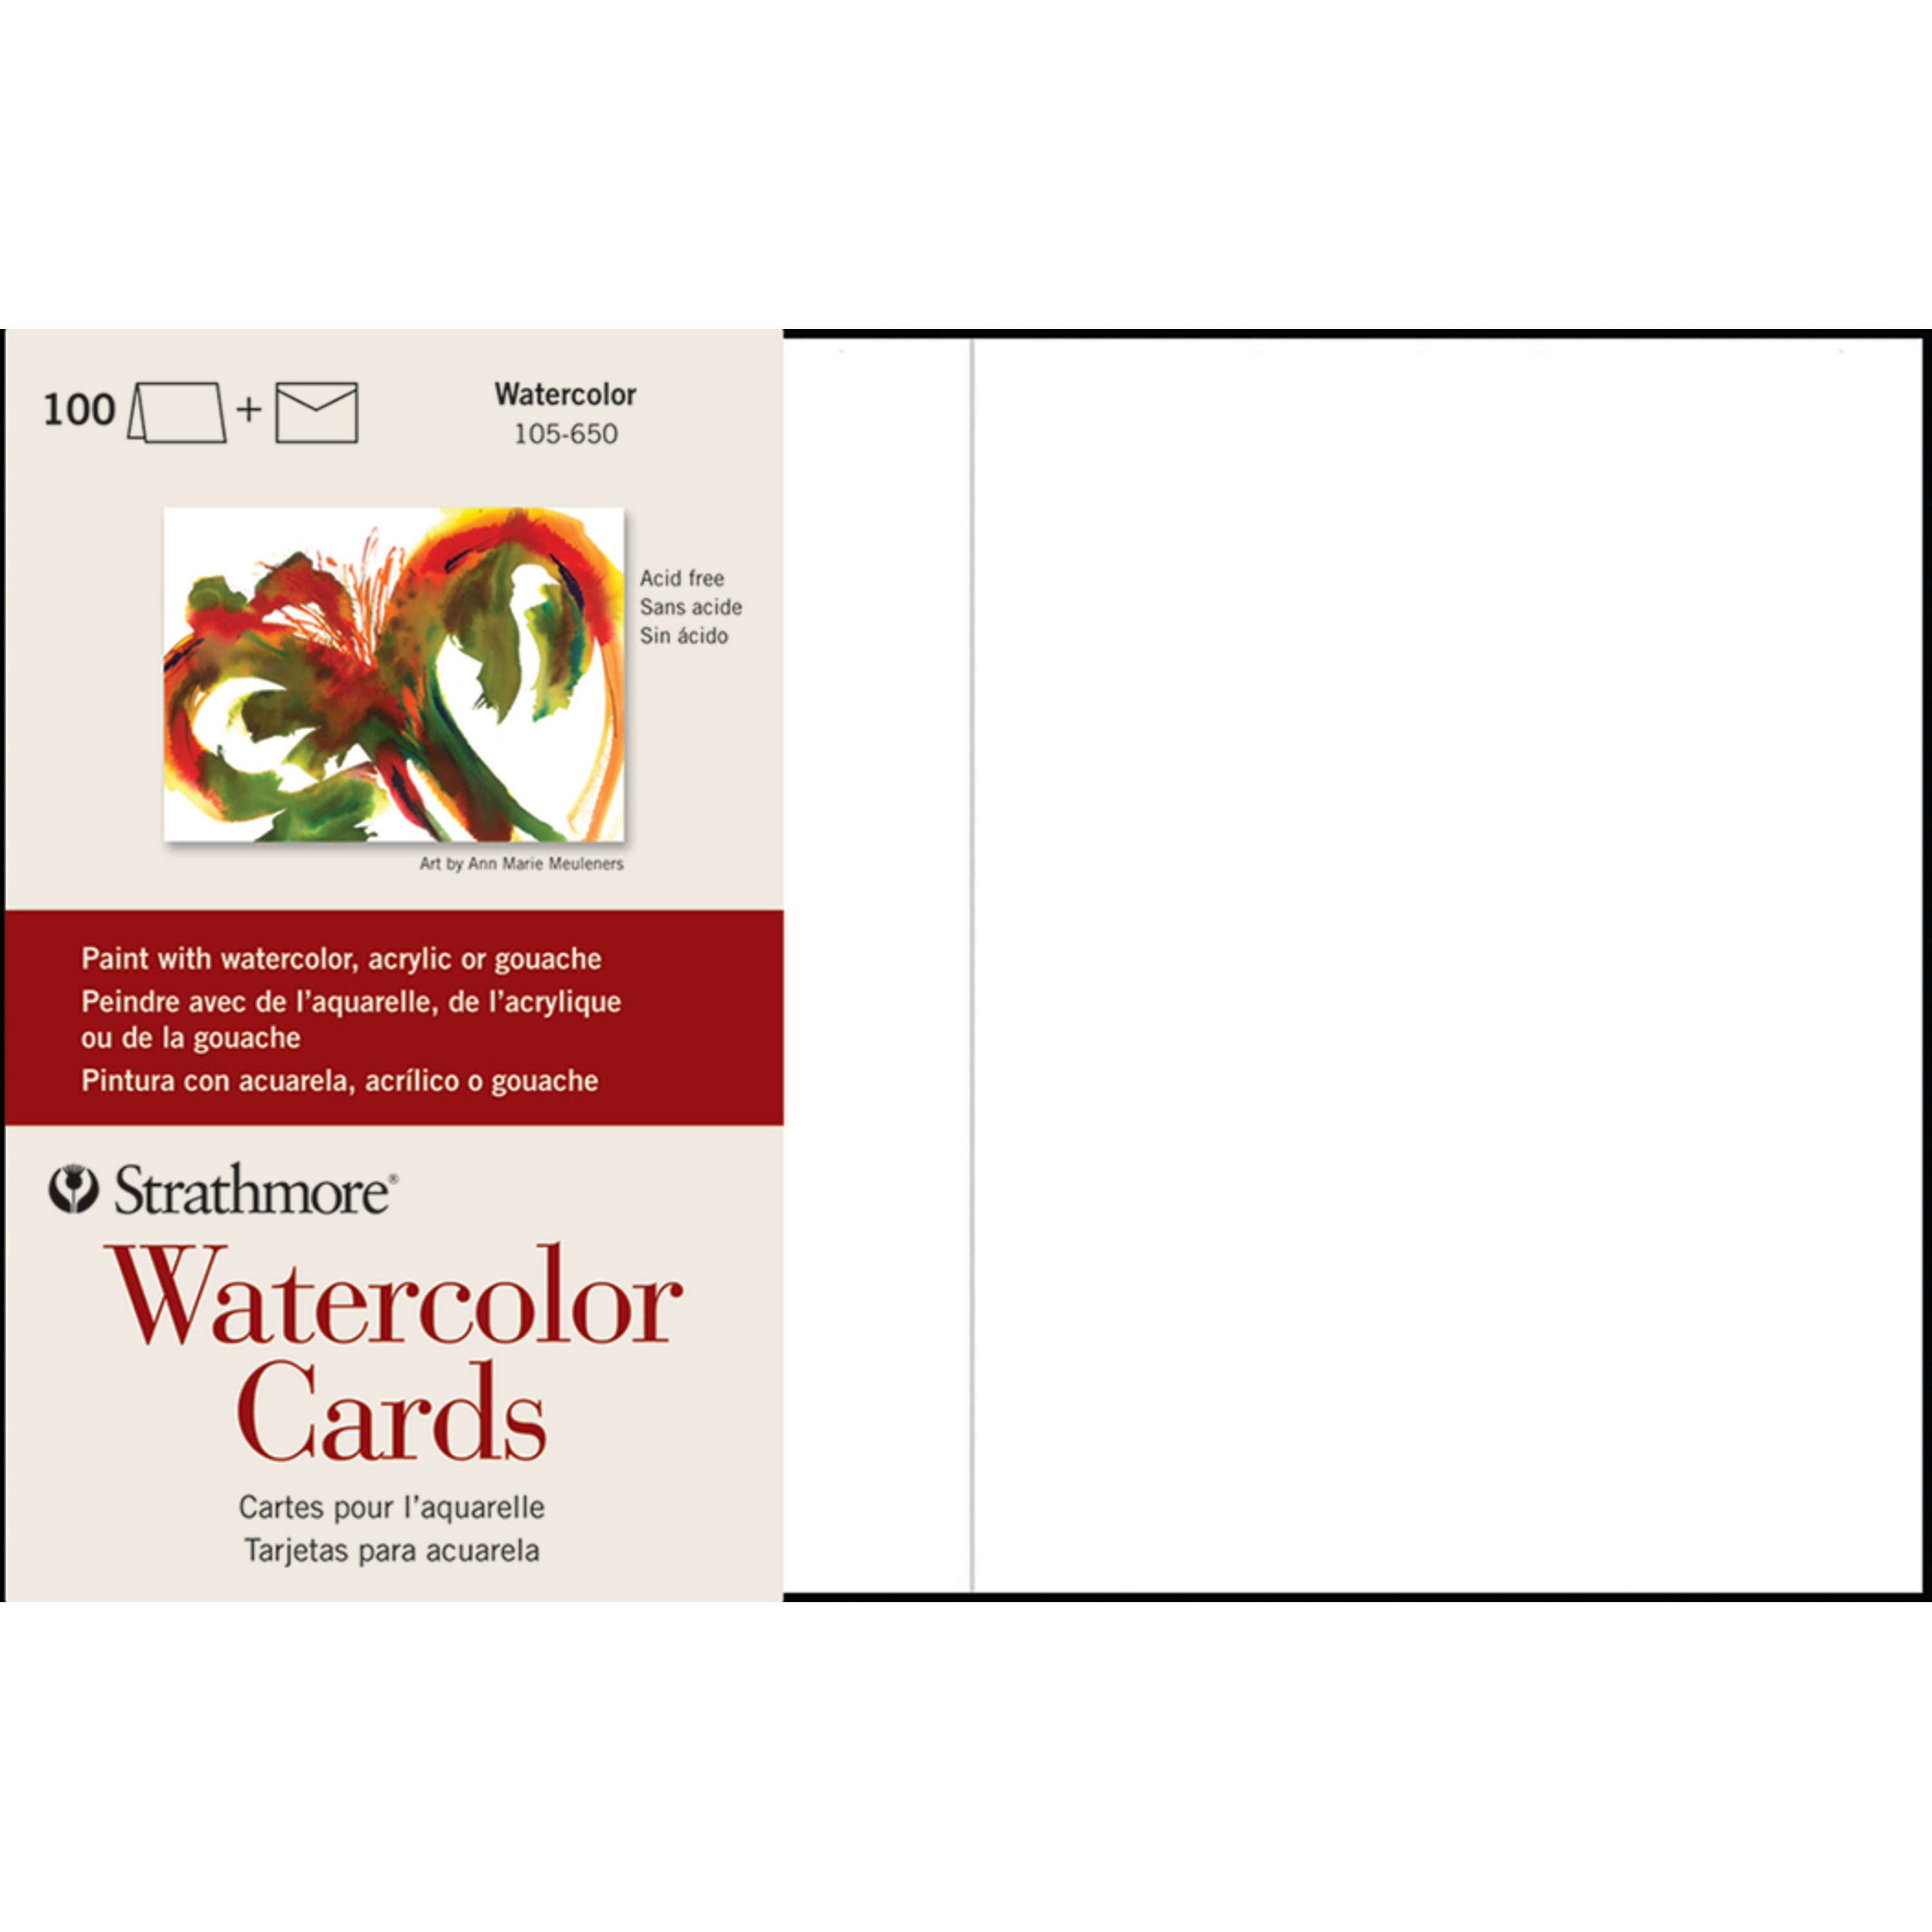 Strathmore Watercolor Cards, 5in x 7in, 100/Pkg.